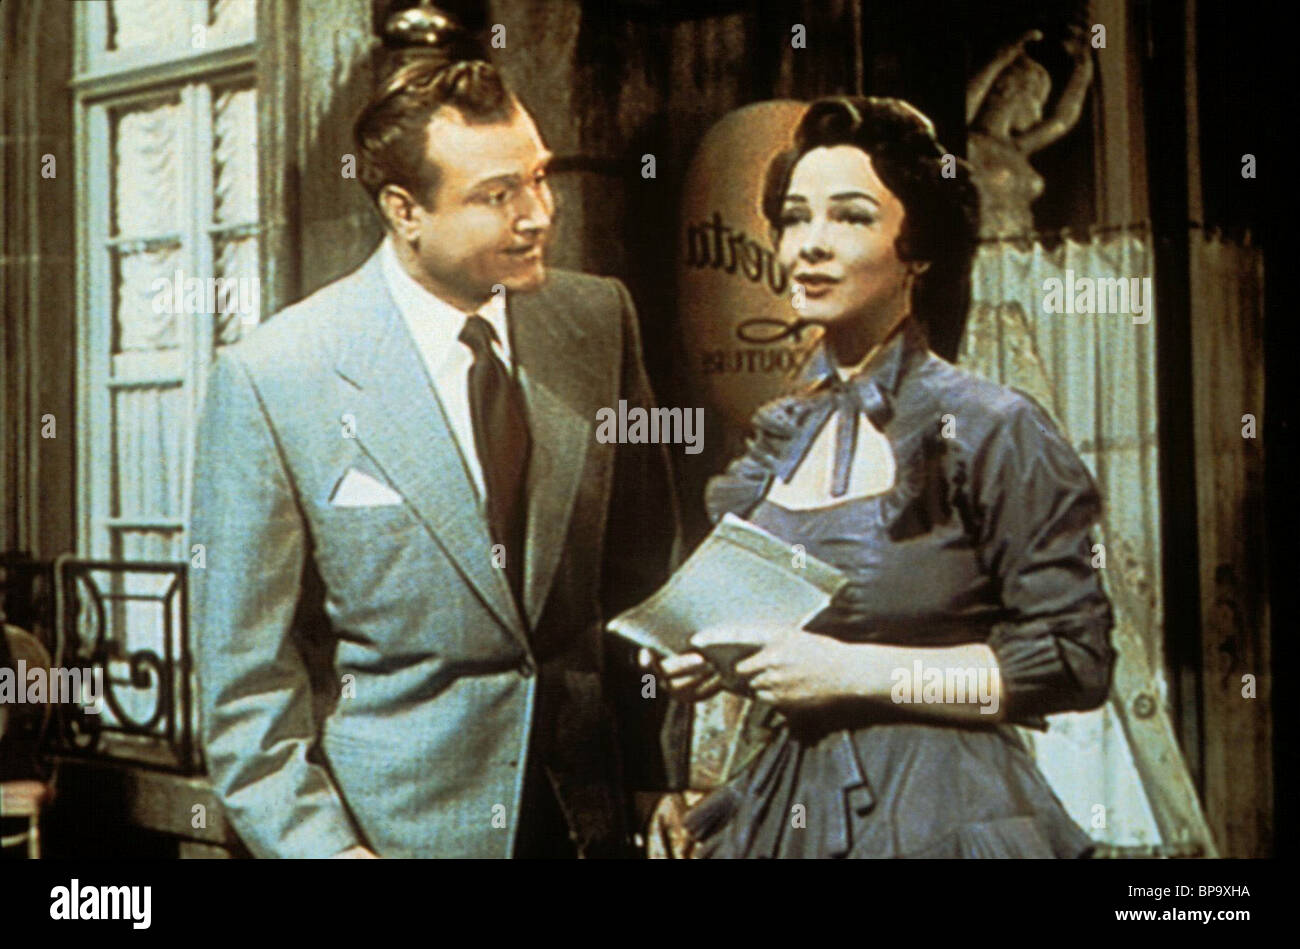 RED SKELTON & KATHRYN GRAYSON LOVELY TO LOOK AT (1952) - Stock Image